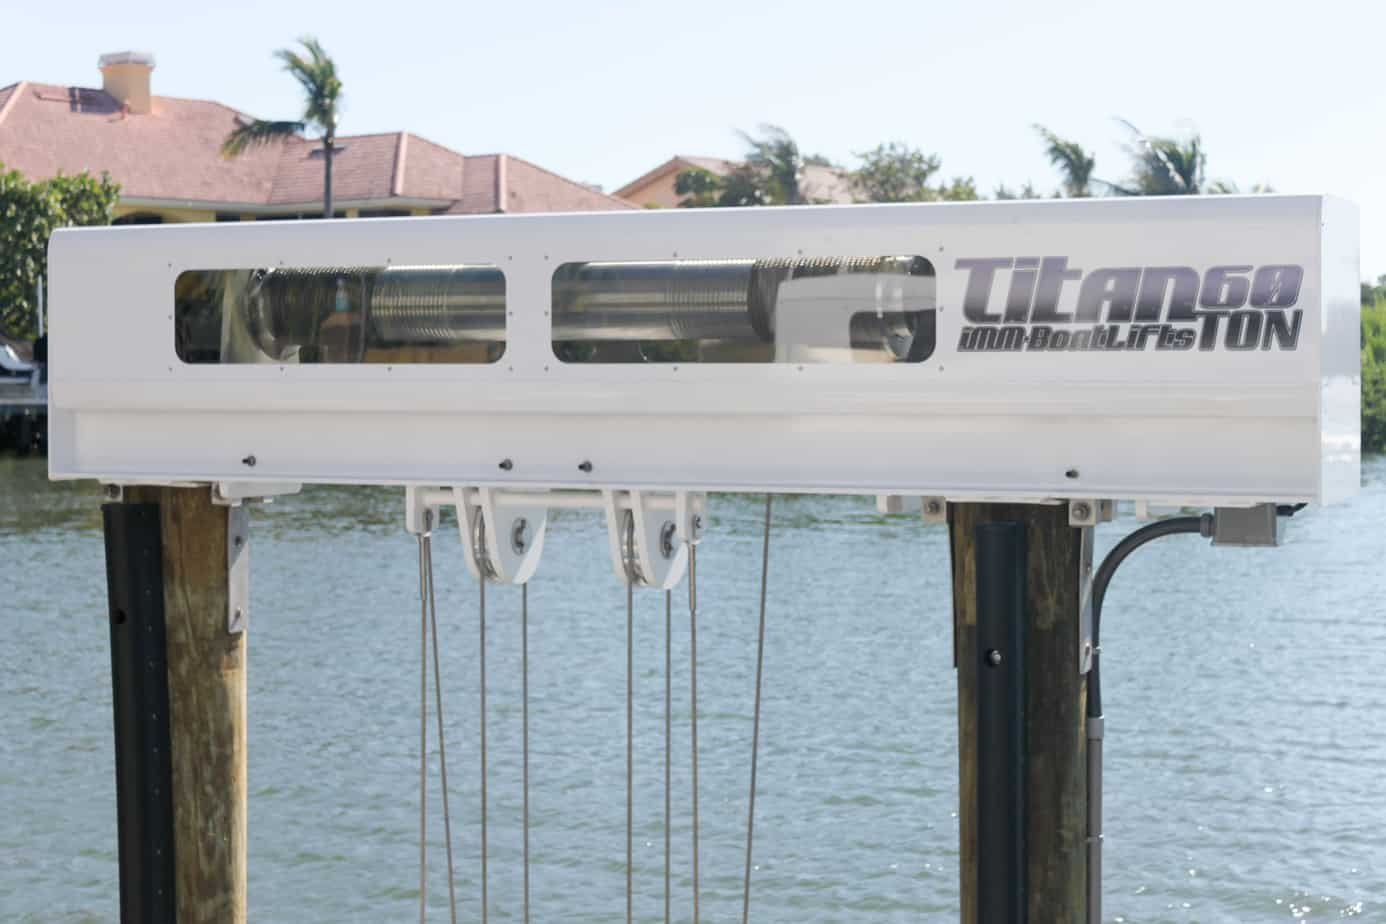 Top Consumer Rated Pontoon Boats For Sale - image patented-technology-Titan-Beam on https://www.iqboatlifts.com